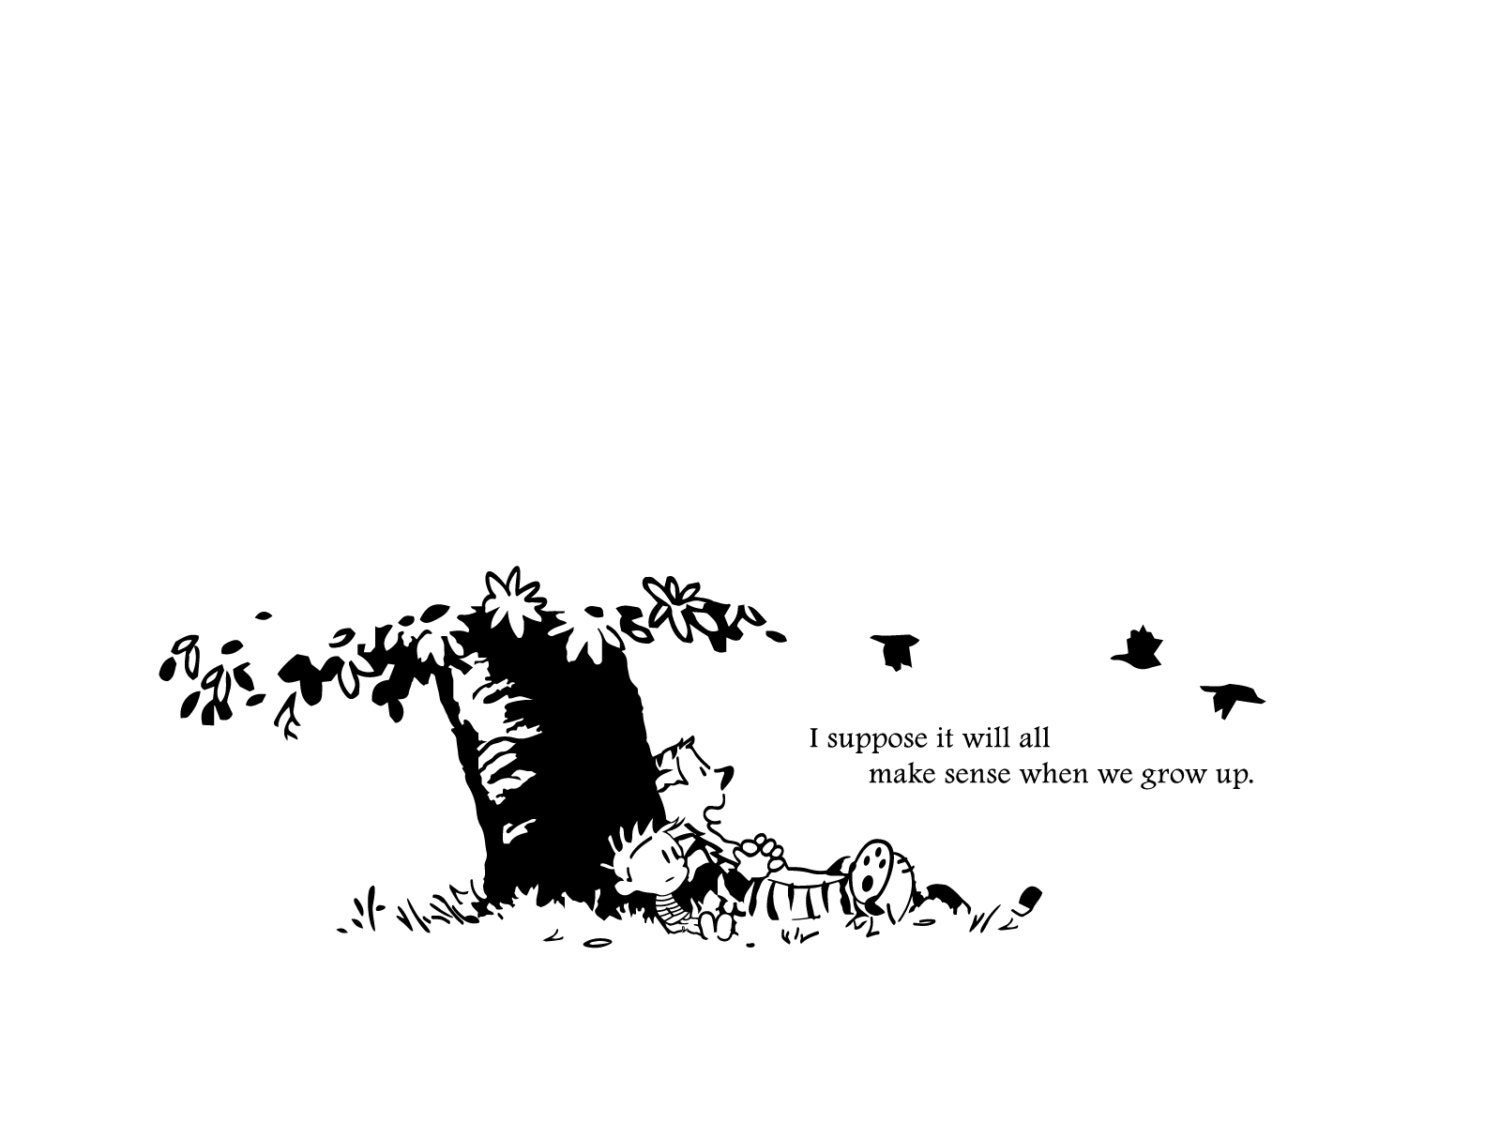 211d27cde ... I Suppose It Will All Make Sense When We Grow Up I: Calvin & Hobbes